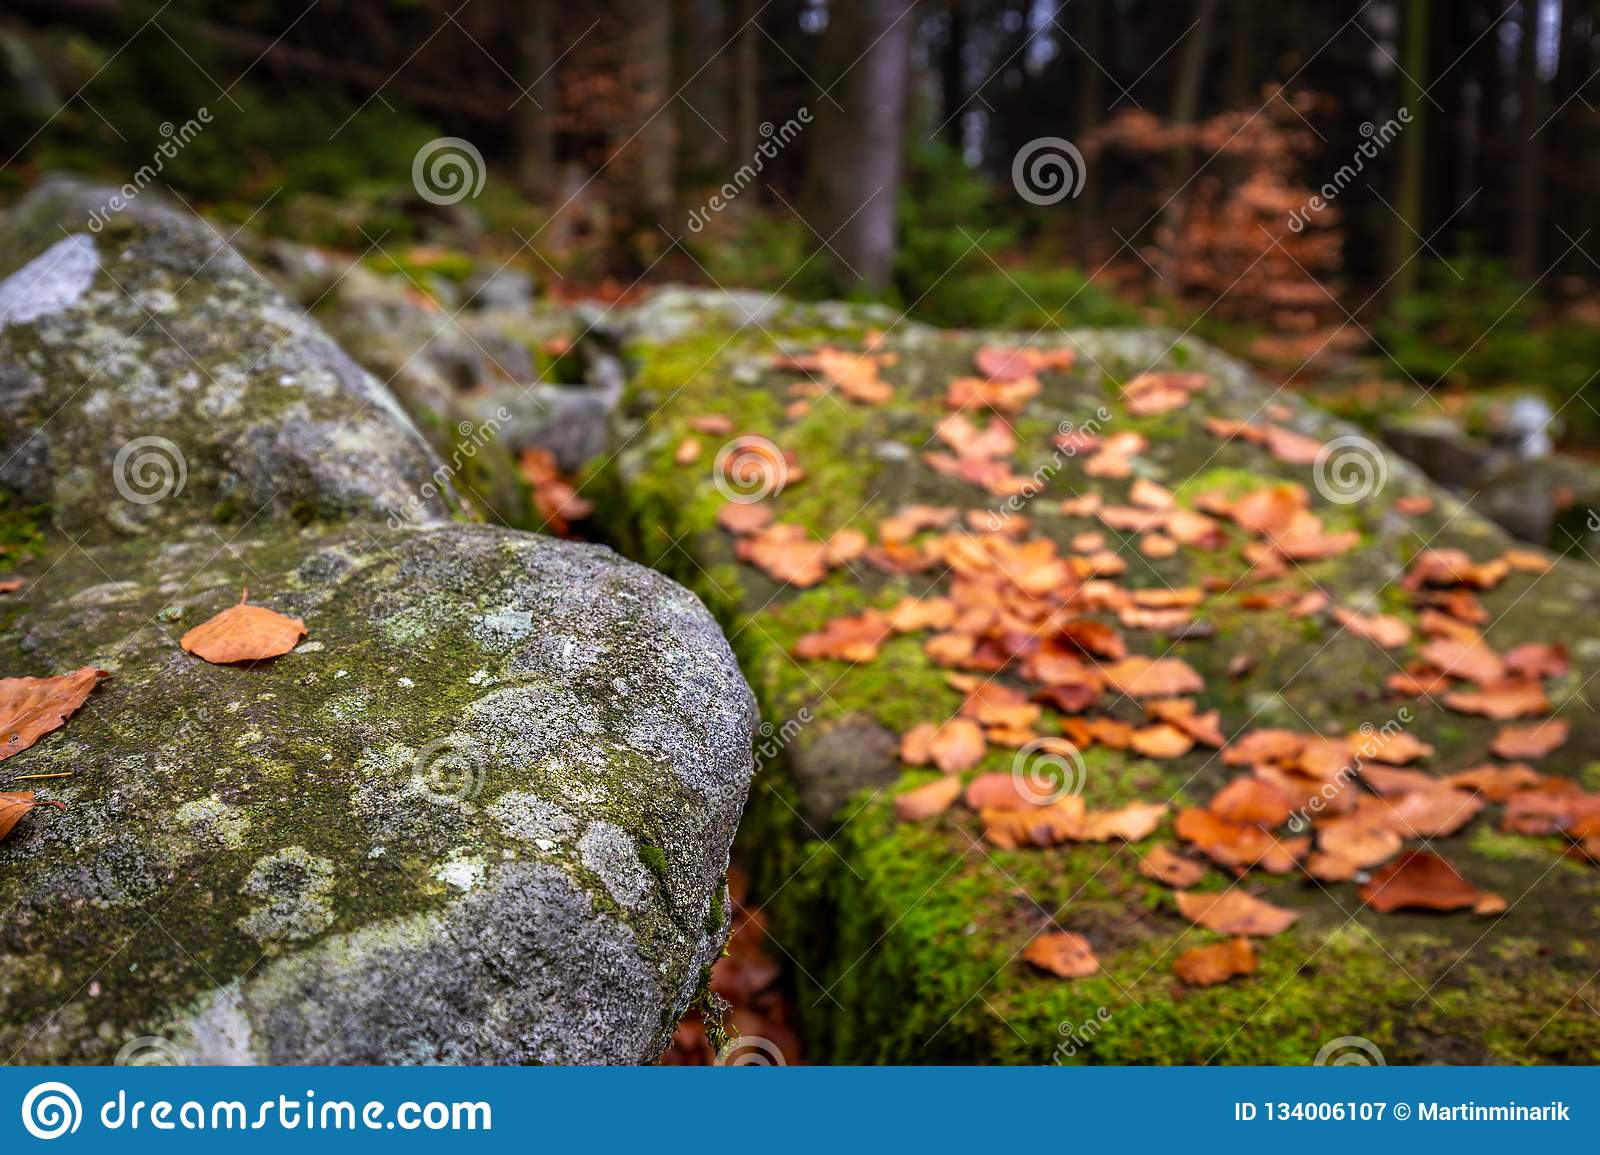 Closeup on autumn forest with rocks full of moss and colorful fallen leaves on the ground